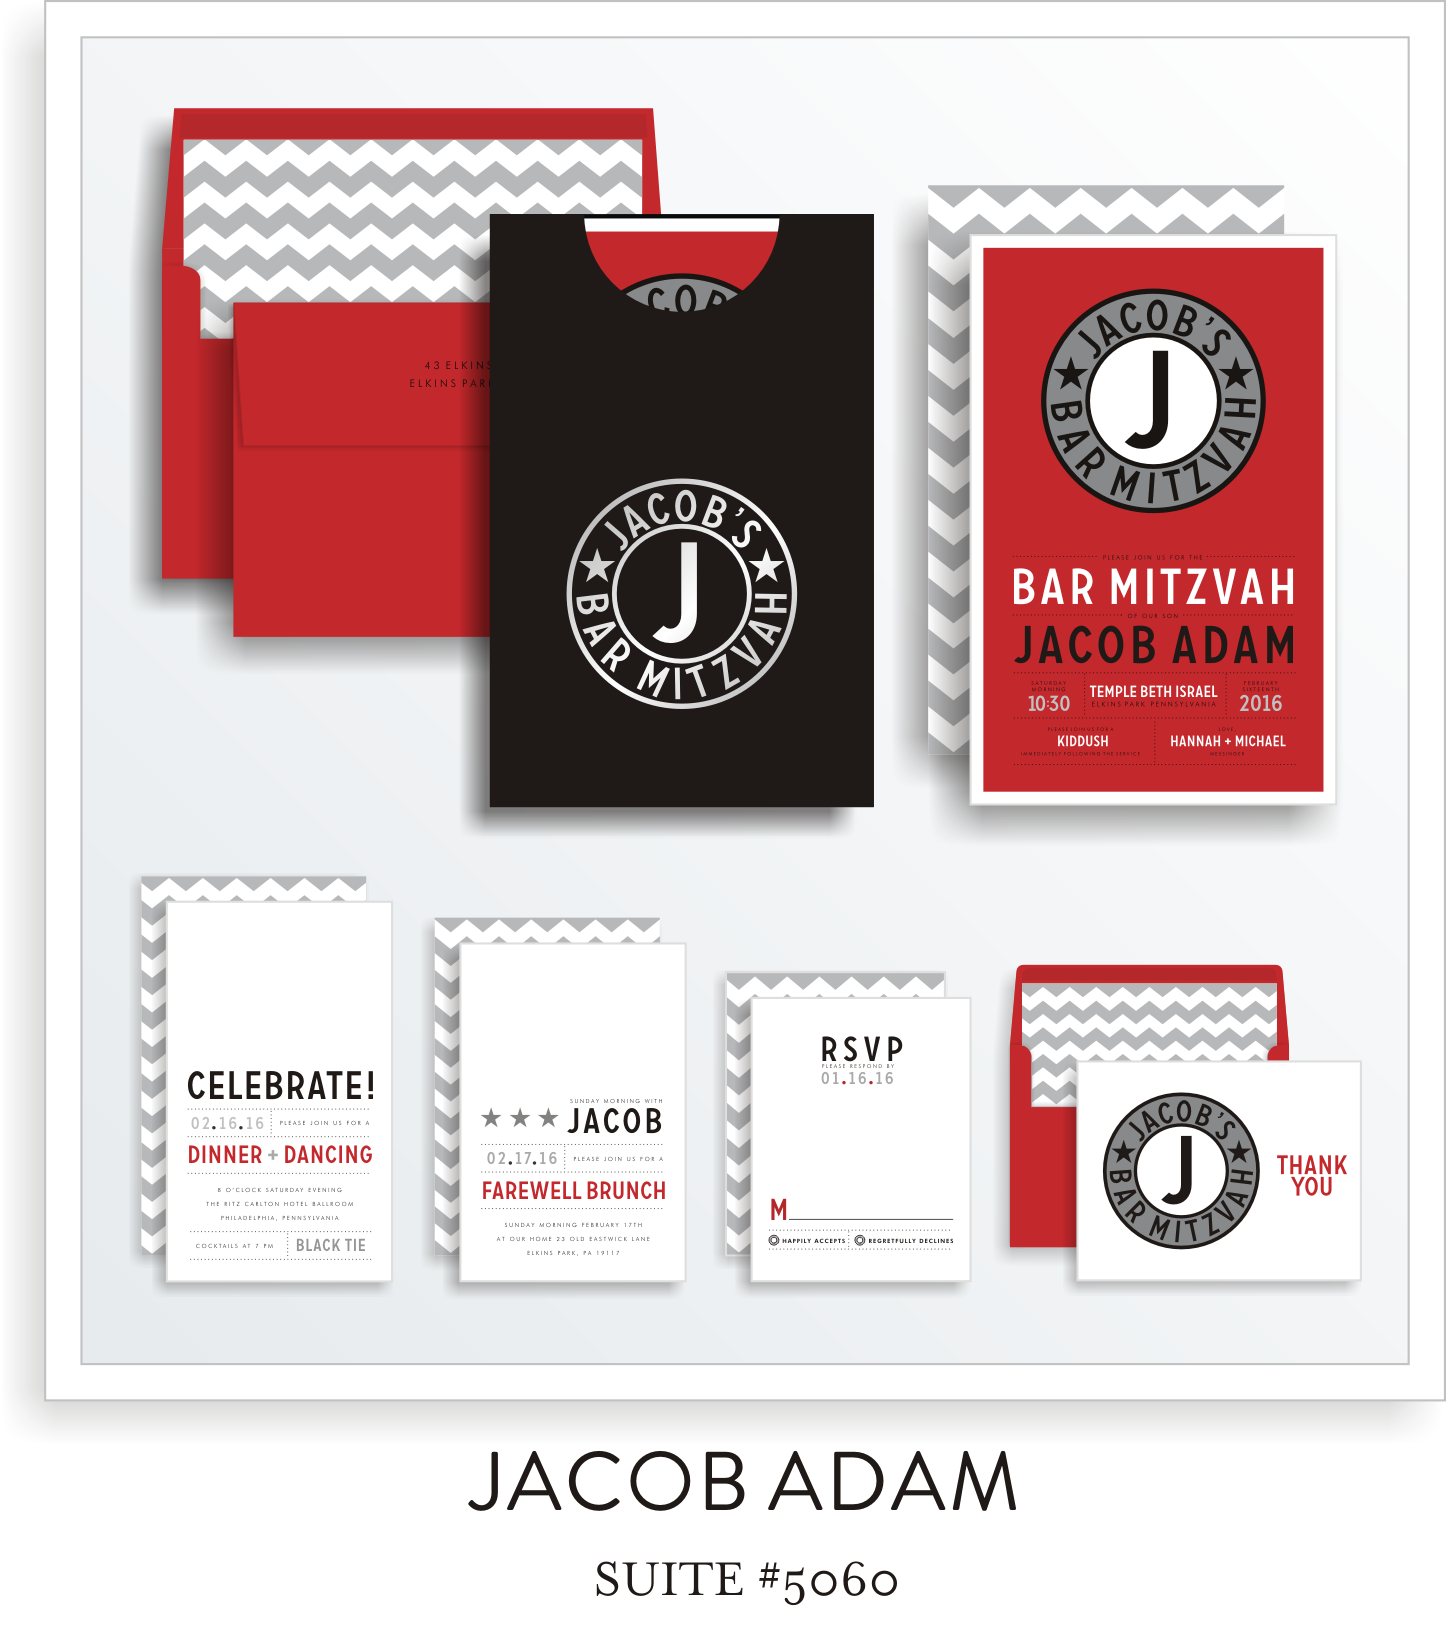 Copy of <a href=/bar-mitzvah-invitations-5060>Suite Details→</a><strong><a href=/jacob-adam-in-colors>see more colors→</a></strong>